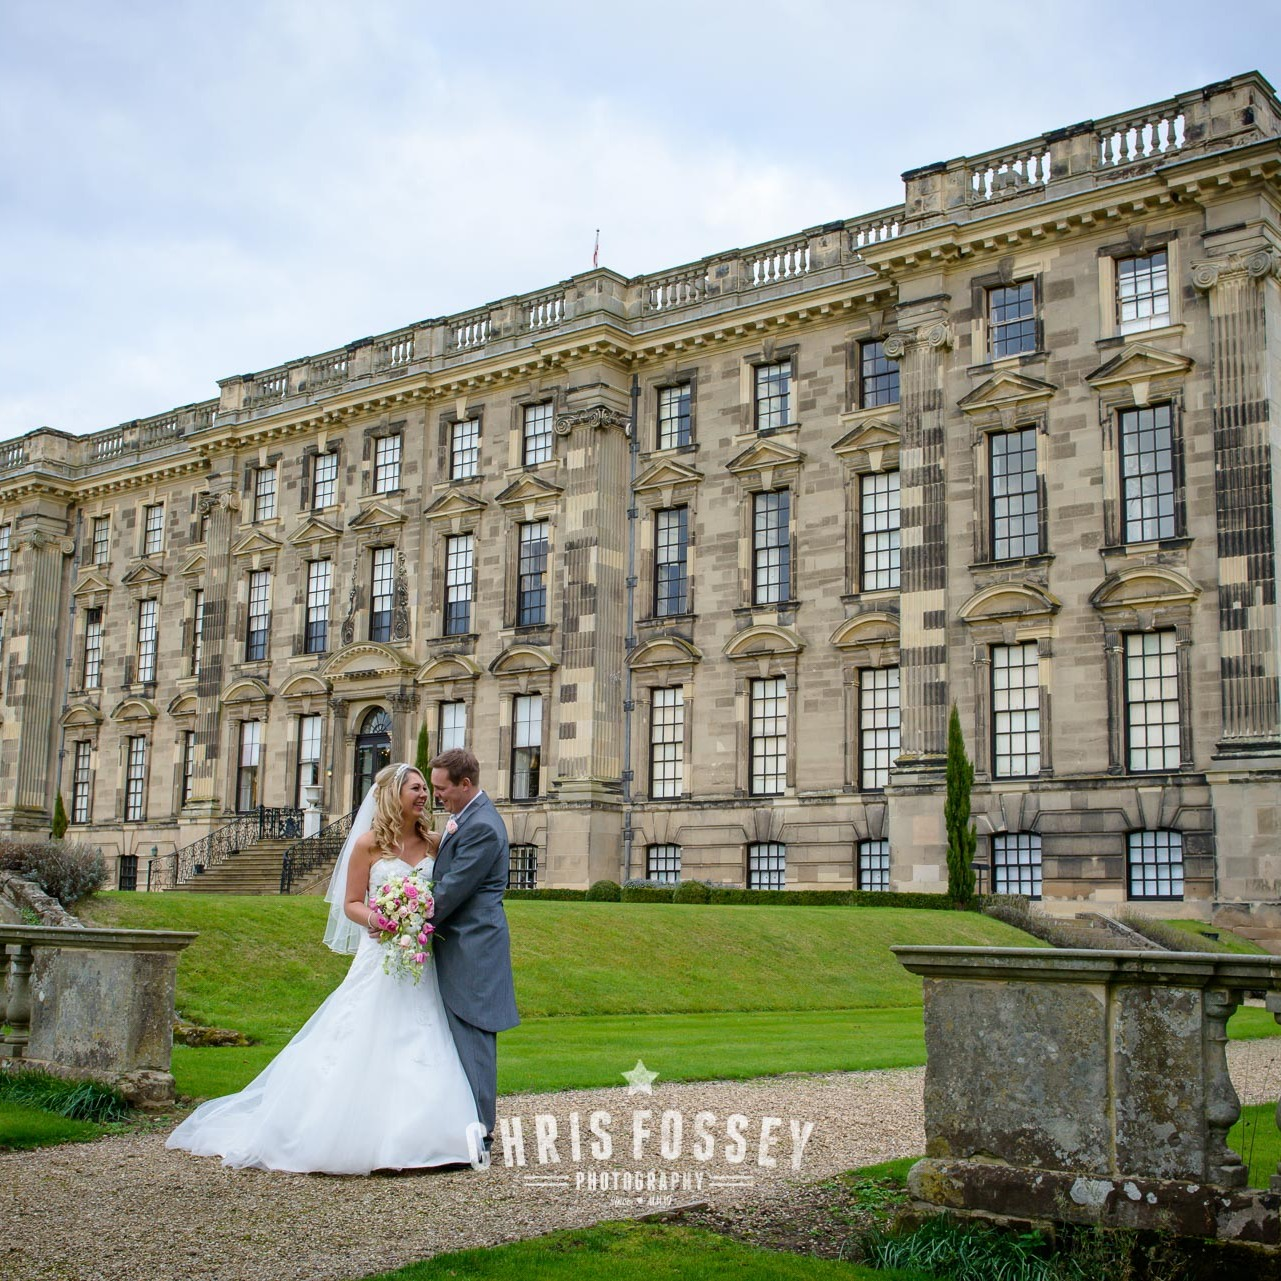 Warwickshire Wedding Photography Portfolio-Stoneleigh Abbey Wedding Photographer Leamington Spa Chris Fossey Photography-55